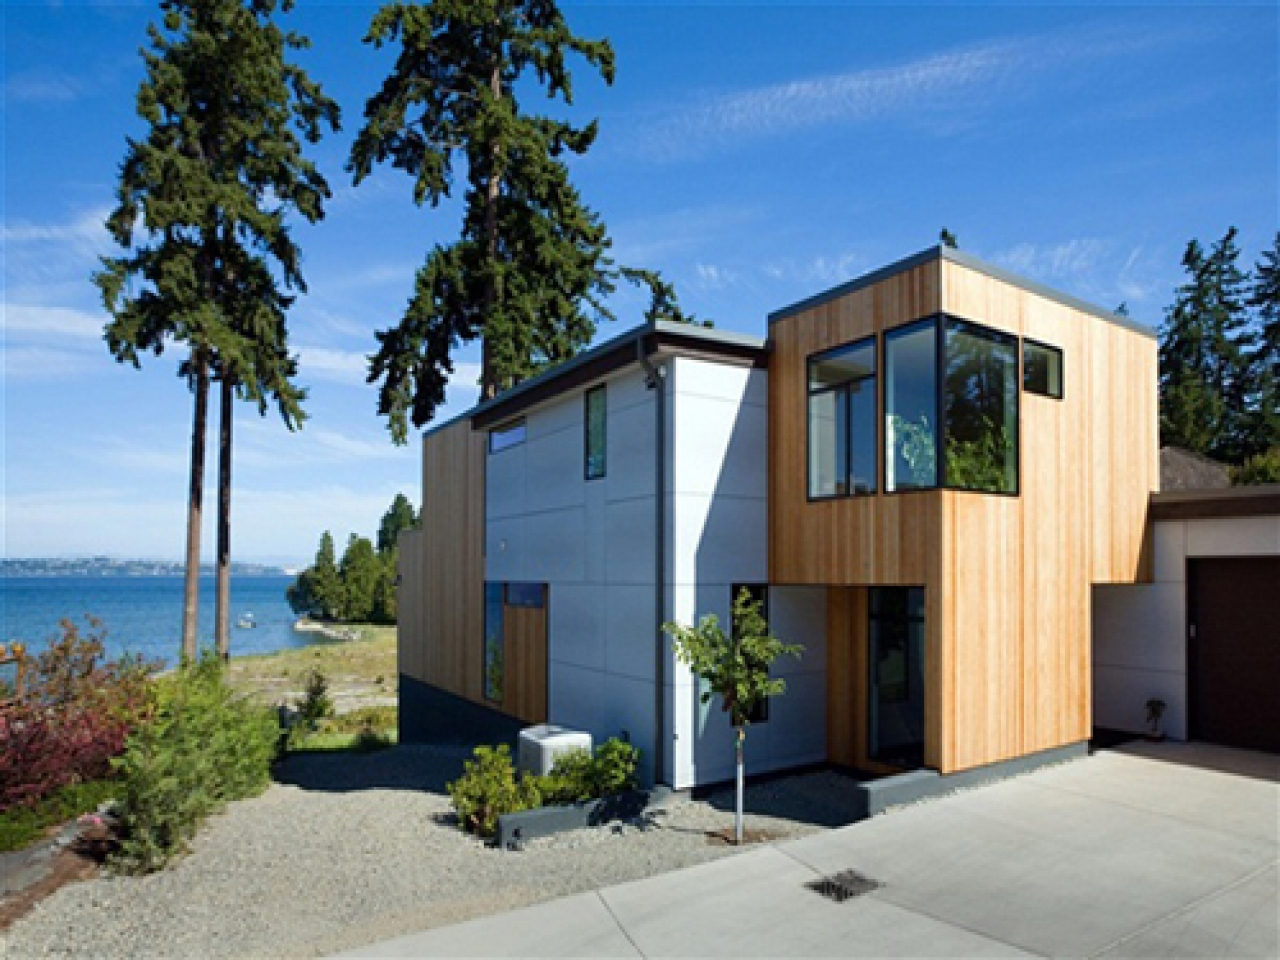 Modern waterfront house designs japanese modern landscape for Waterfront home design ideas